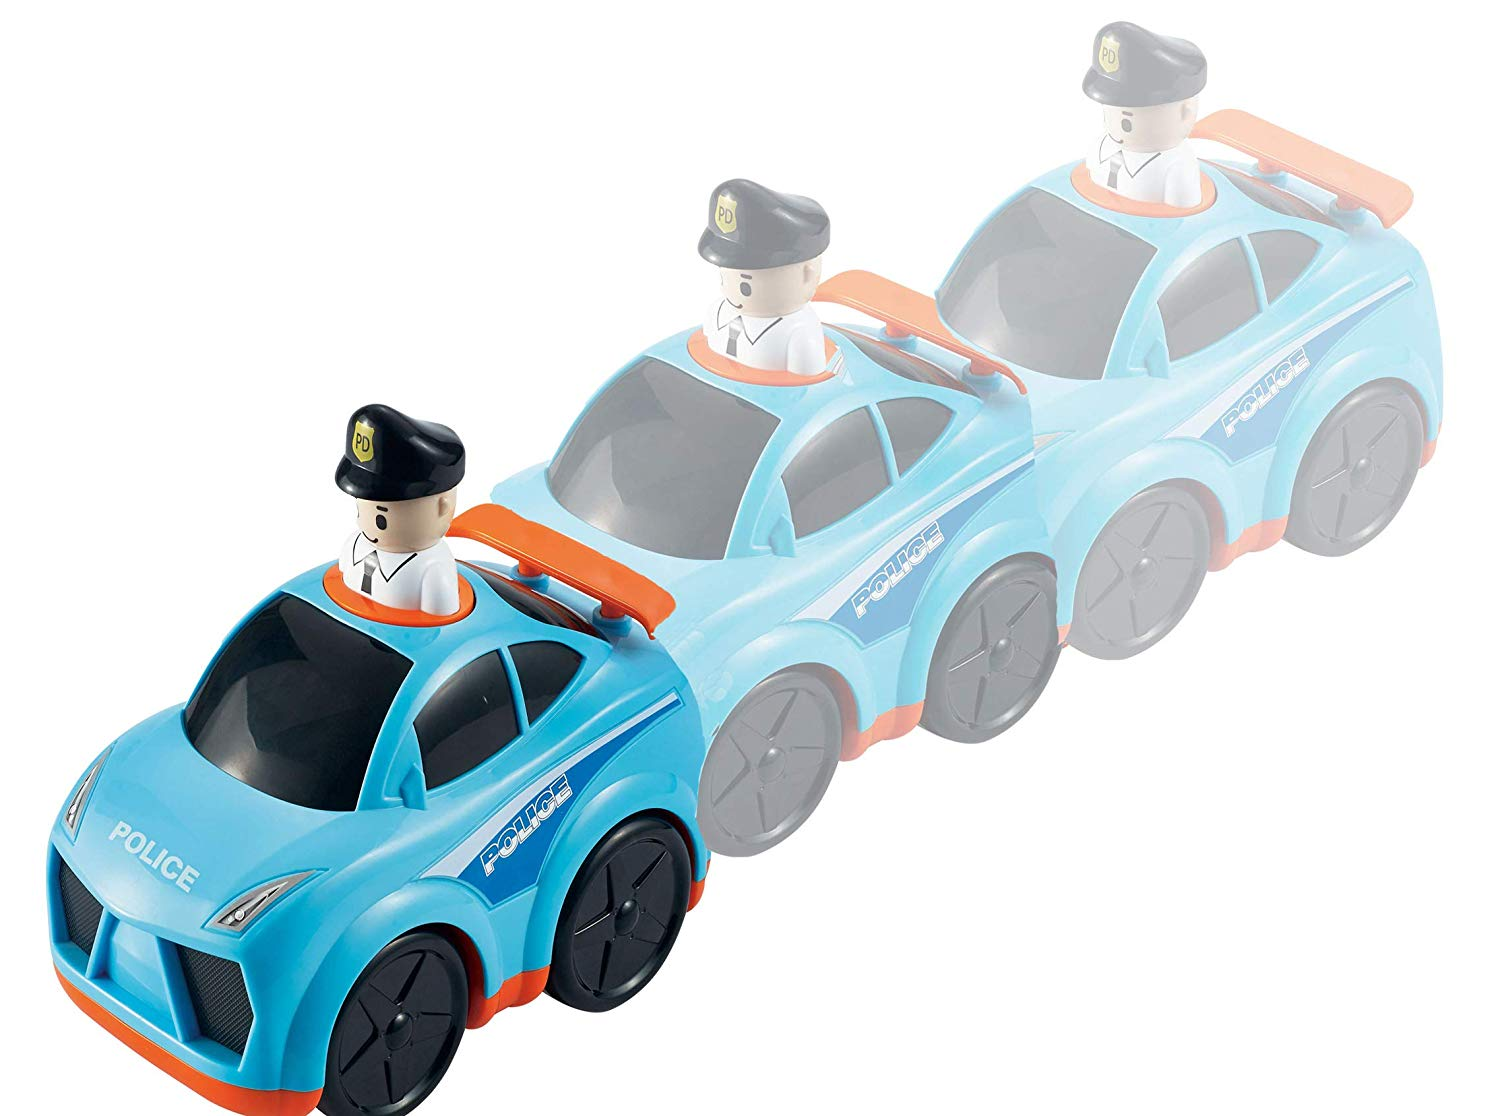 infunbebe press n go car toys vehicle toys 宝宝玩具车精彩车救火车